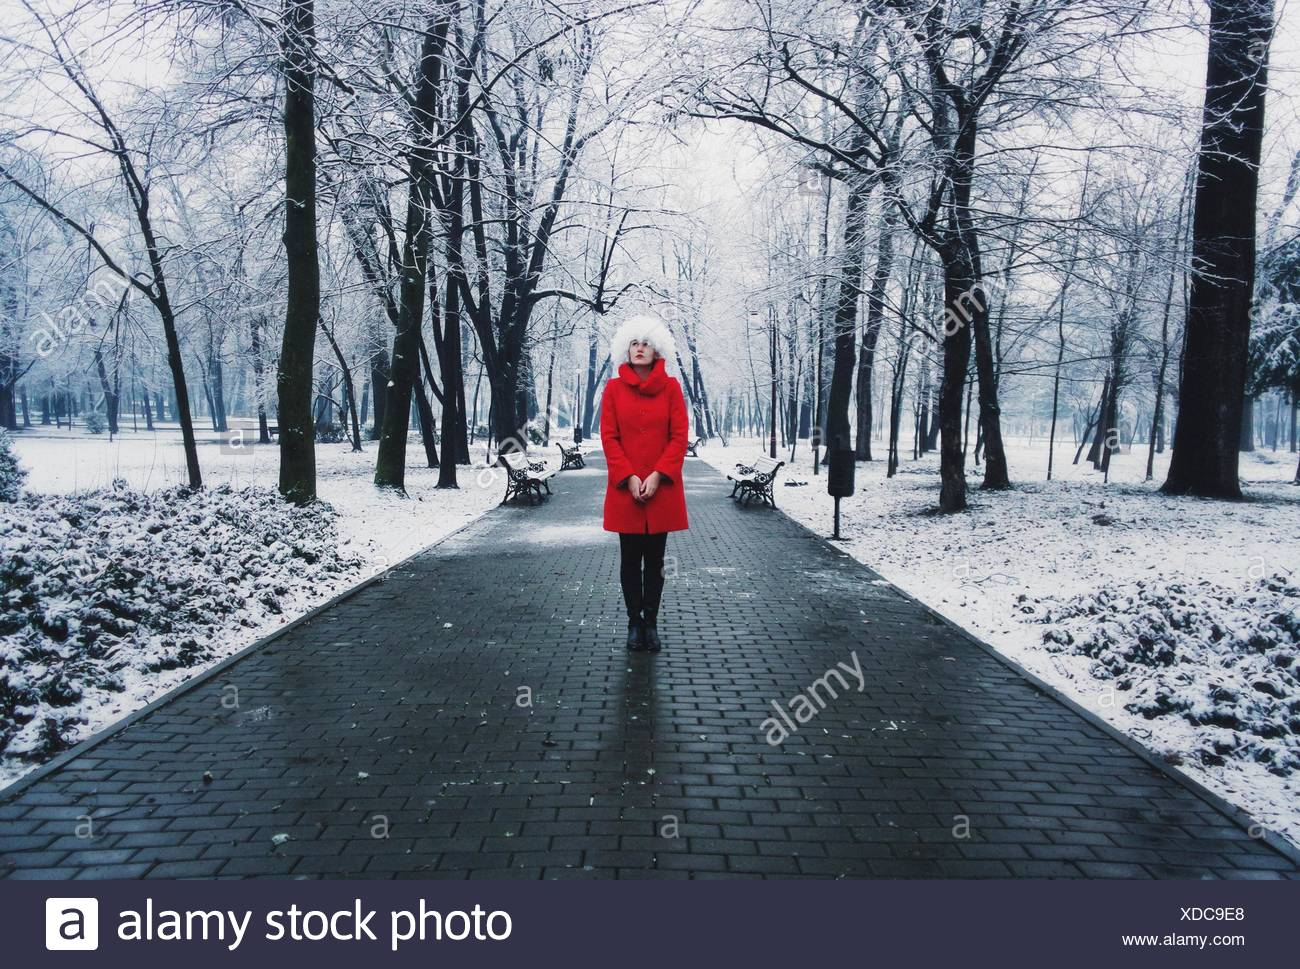 Portrait of young woman wearing red coat in snow covered park - Stock Image